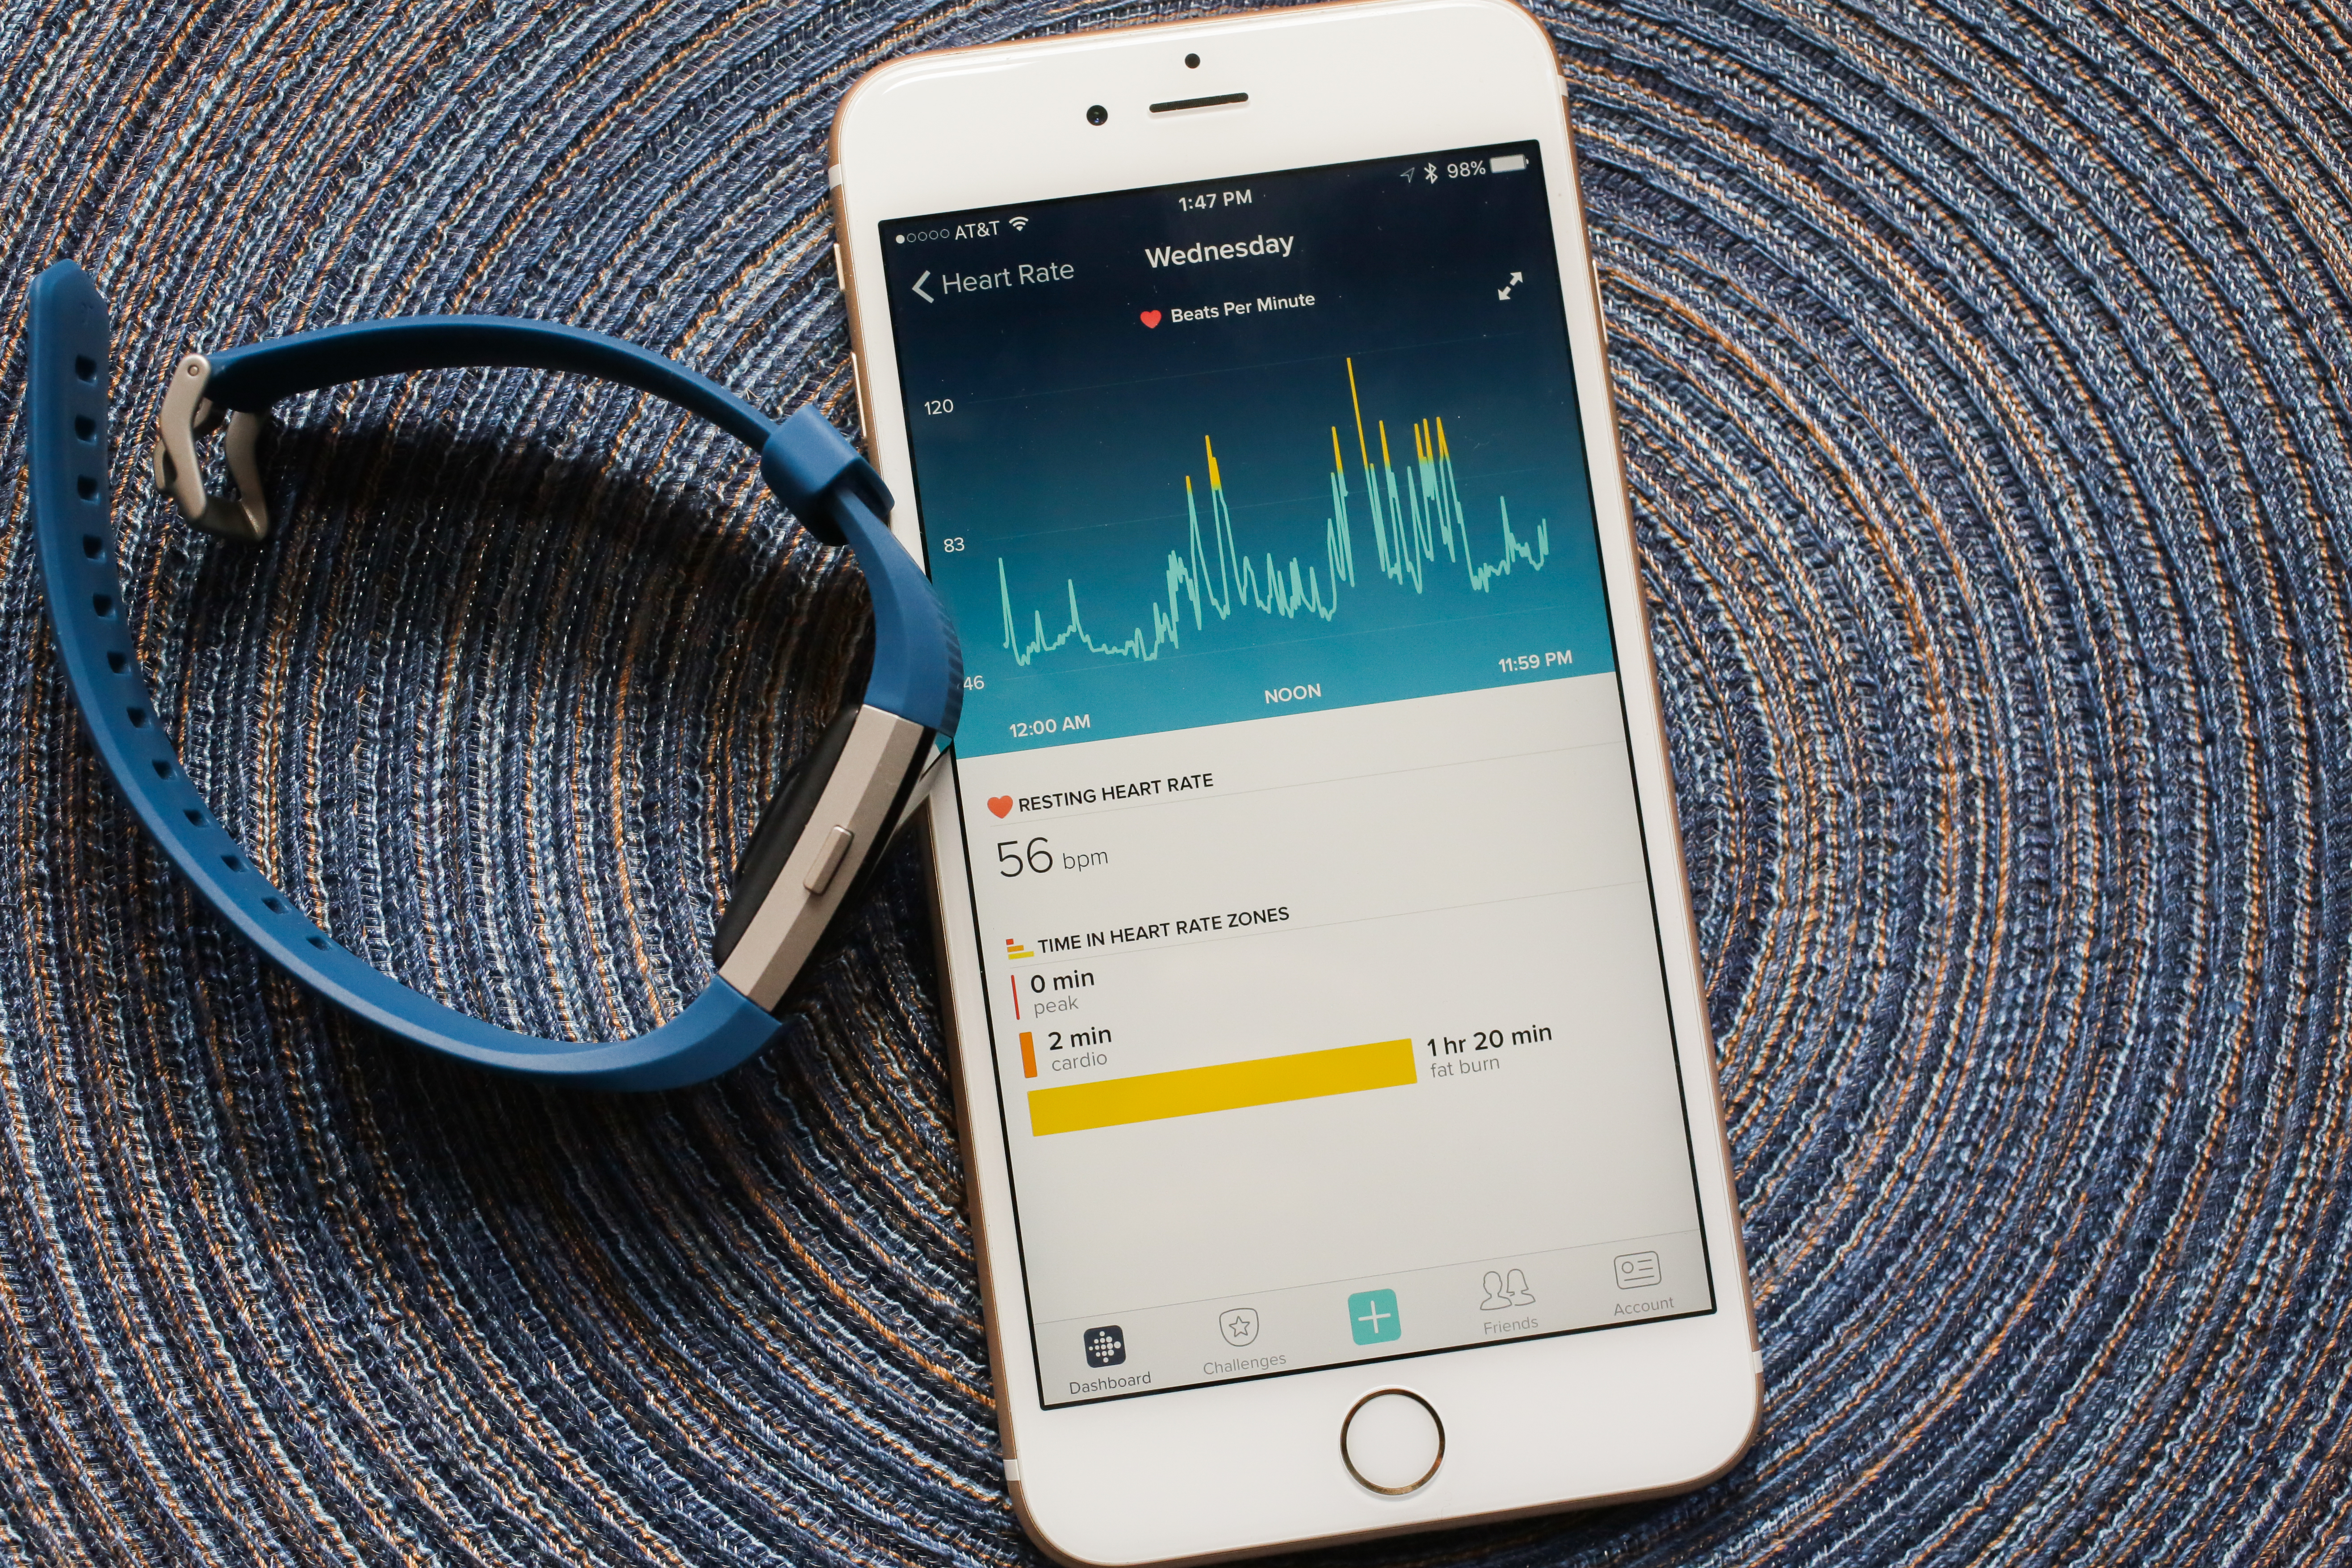 fitbit-charge-2-01.jpg